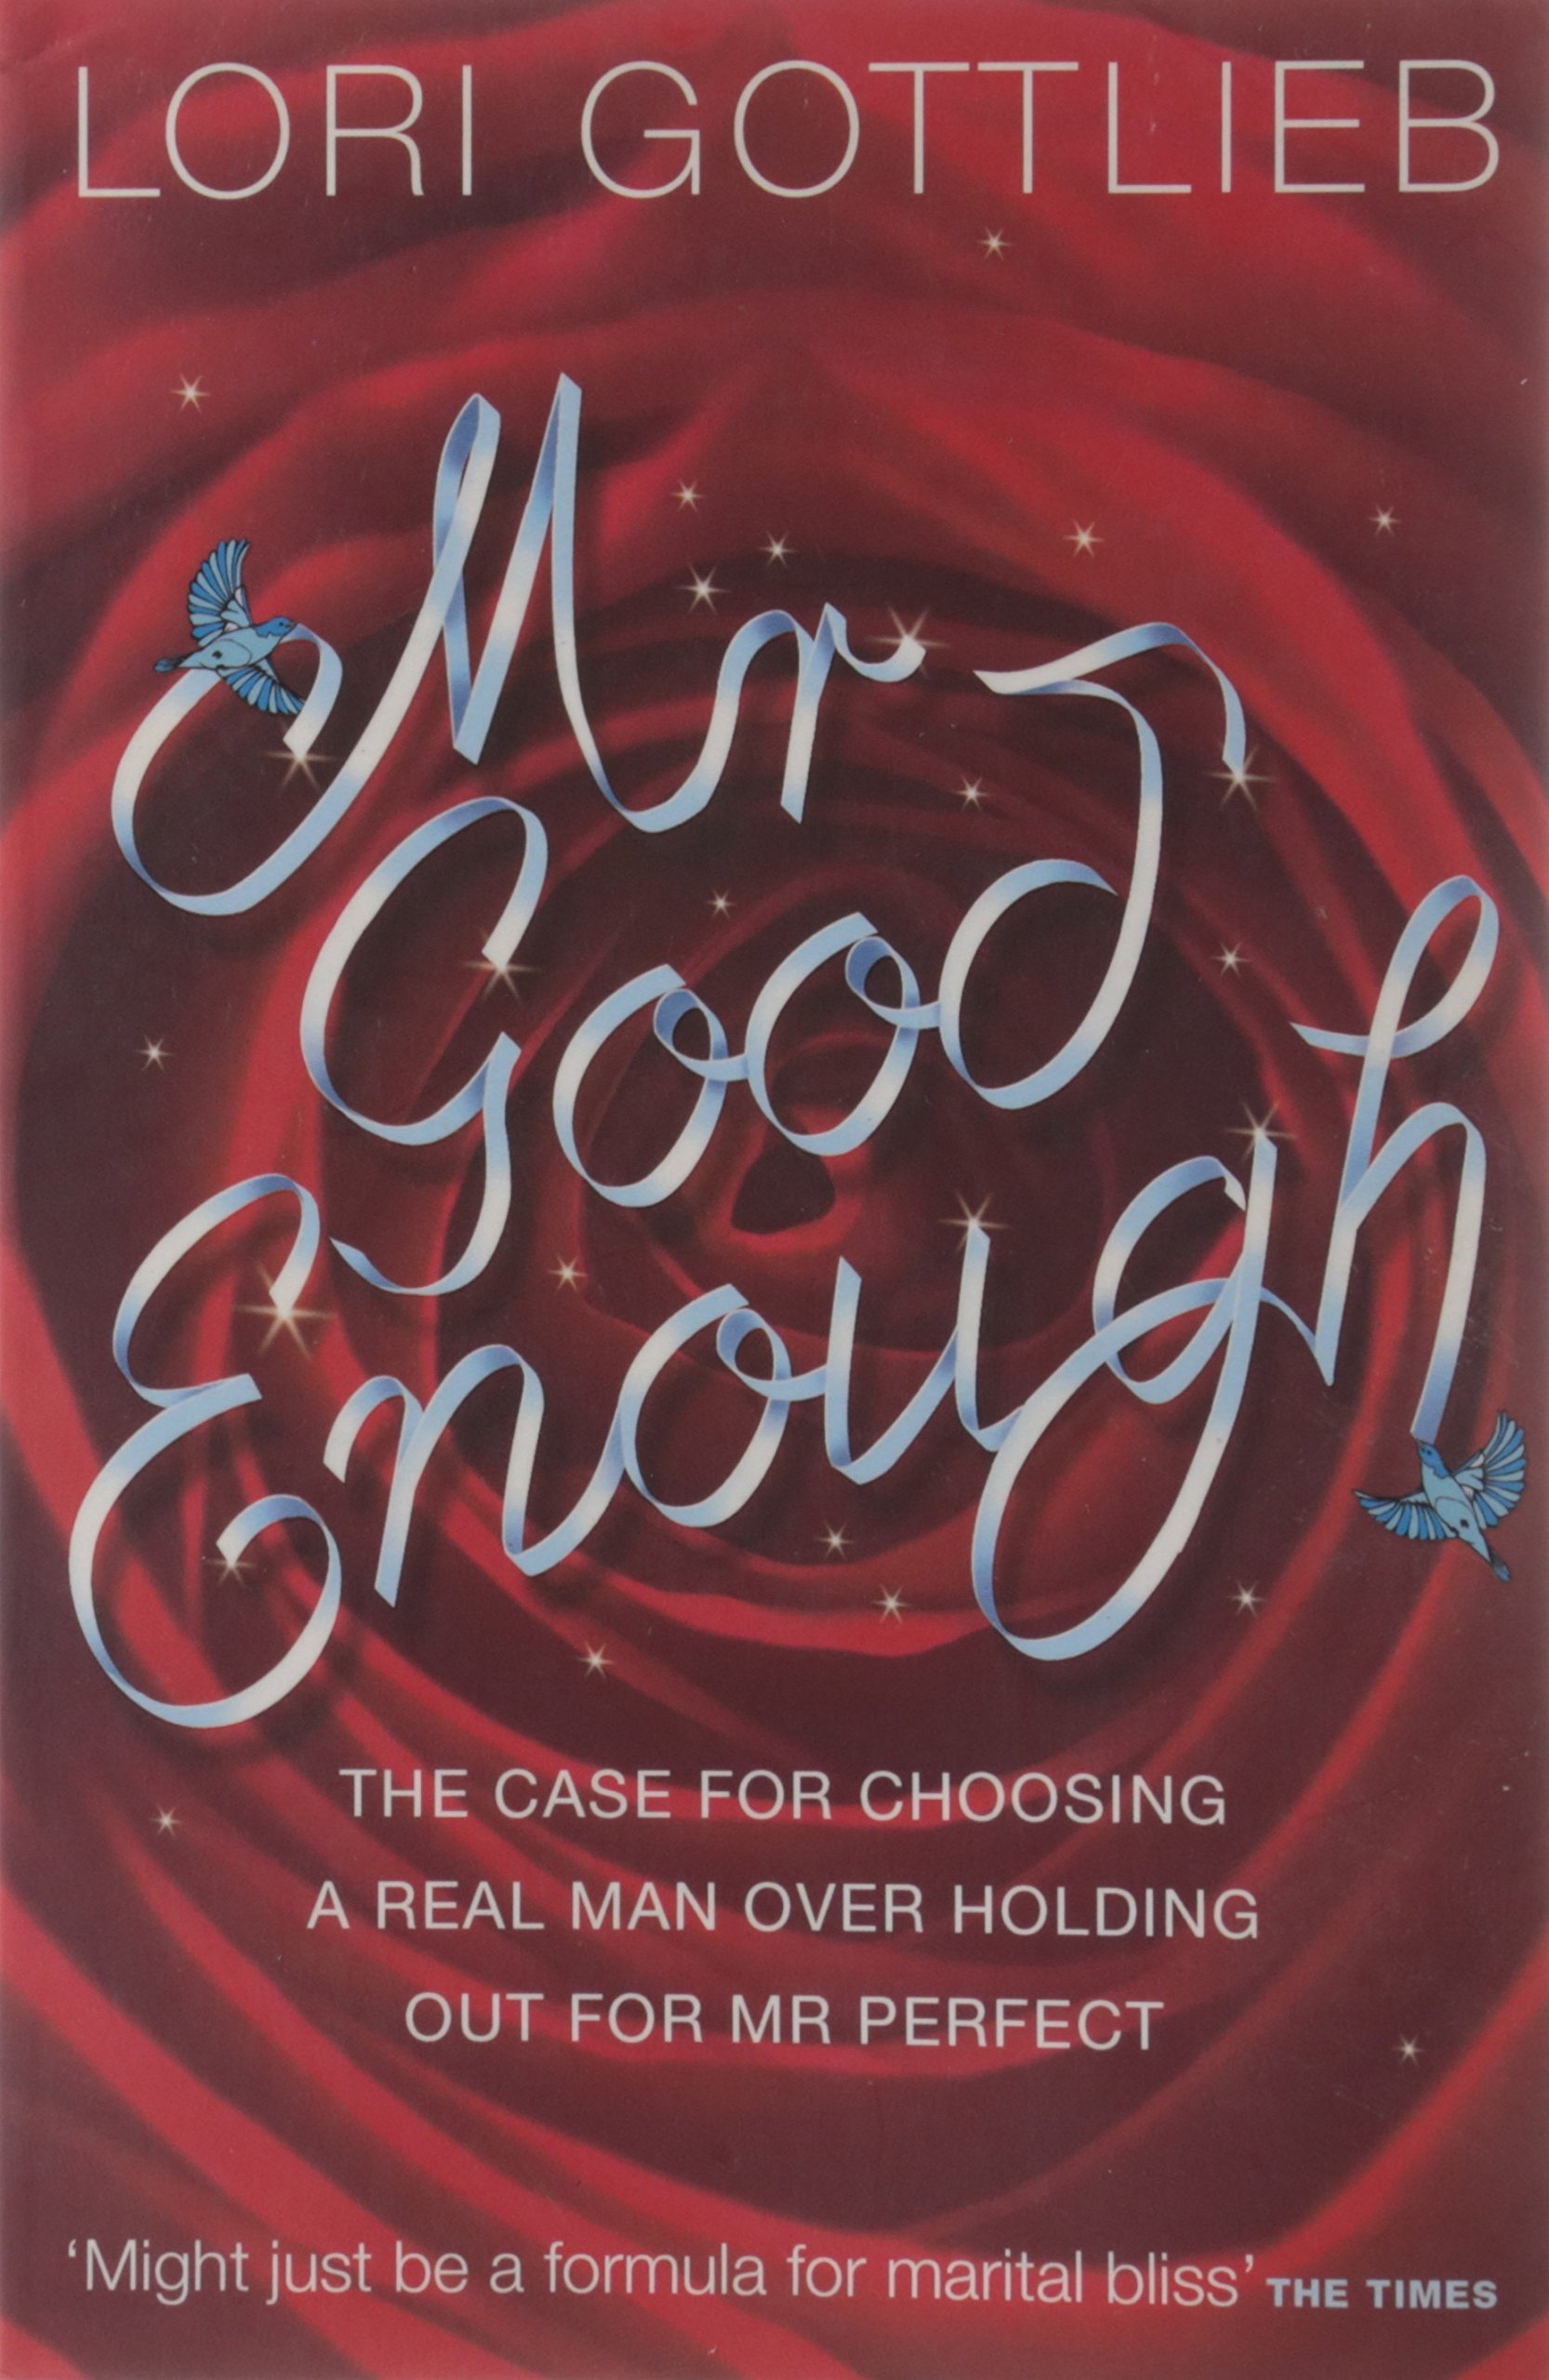 MR GOOD ENOUGH: THE CASE FOR CHOOSING A REAL MAN OVER HOLDING OUT FOR MR PERFECT [Paperback] pdf epub